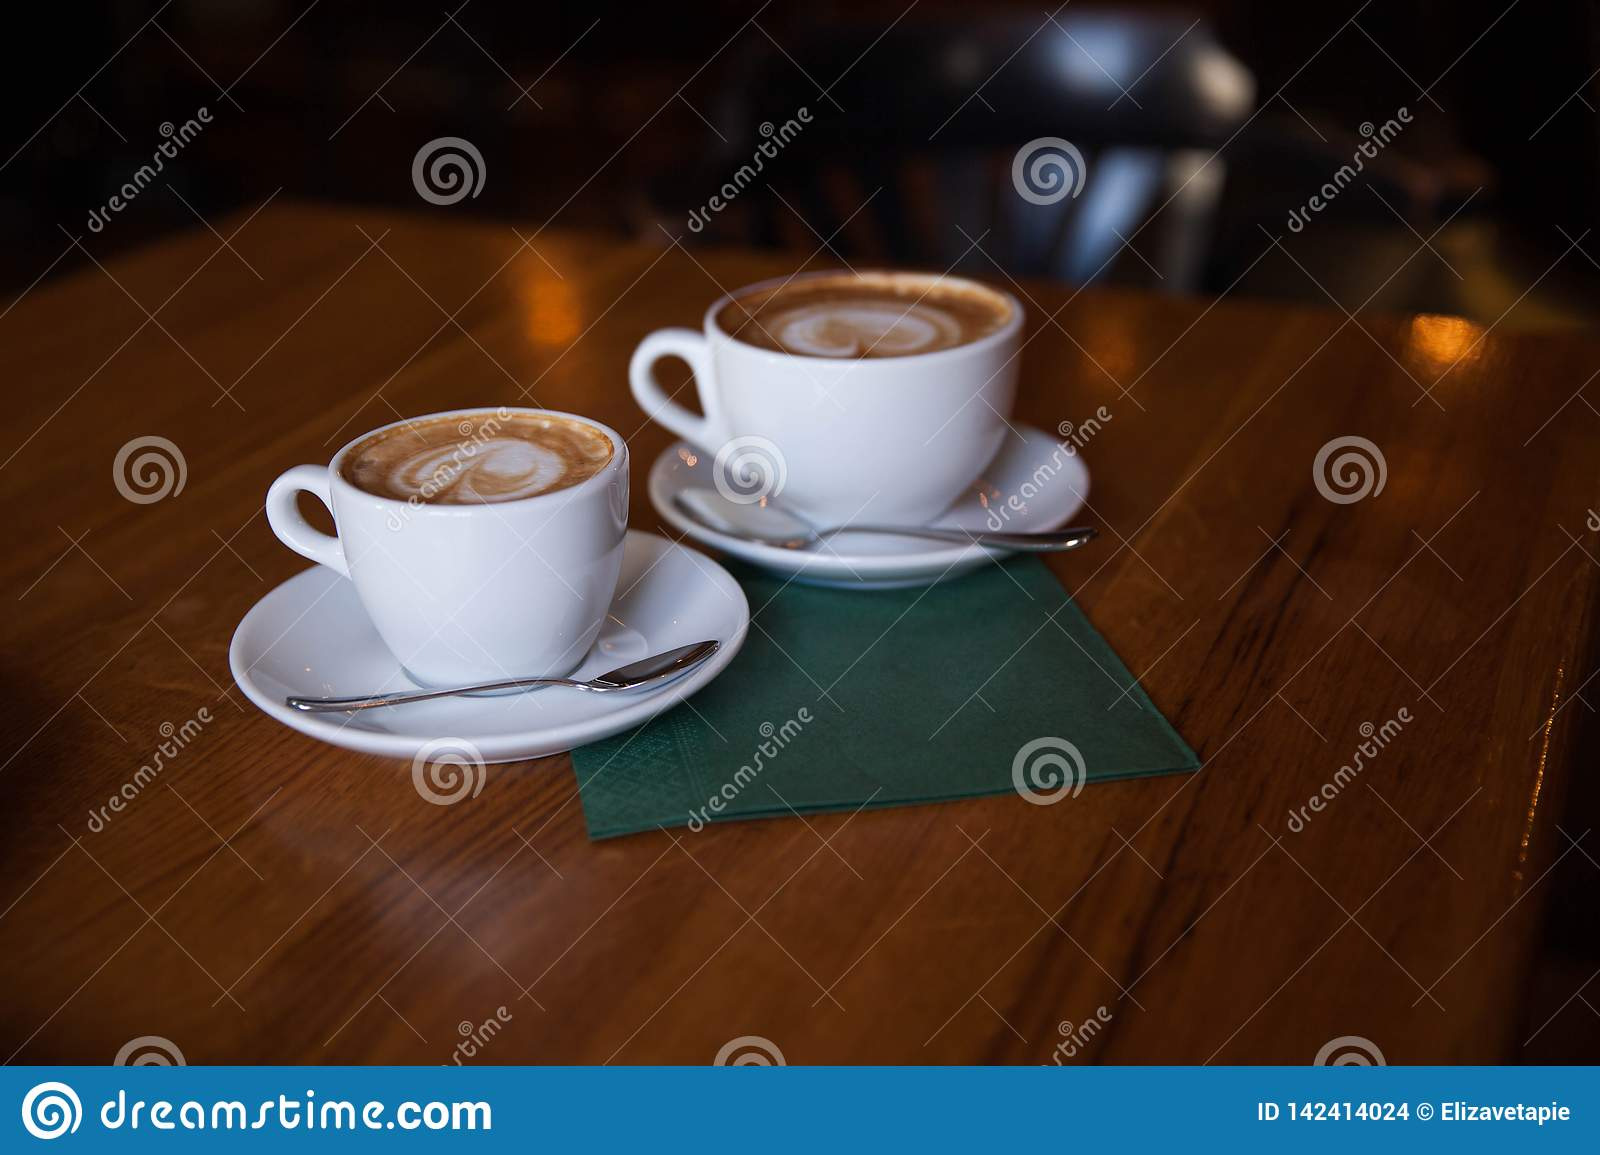 Two cups of cappuccino on a wooden table